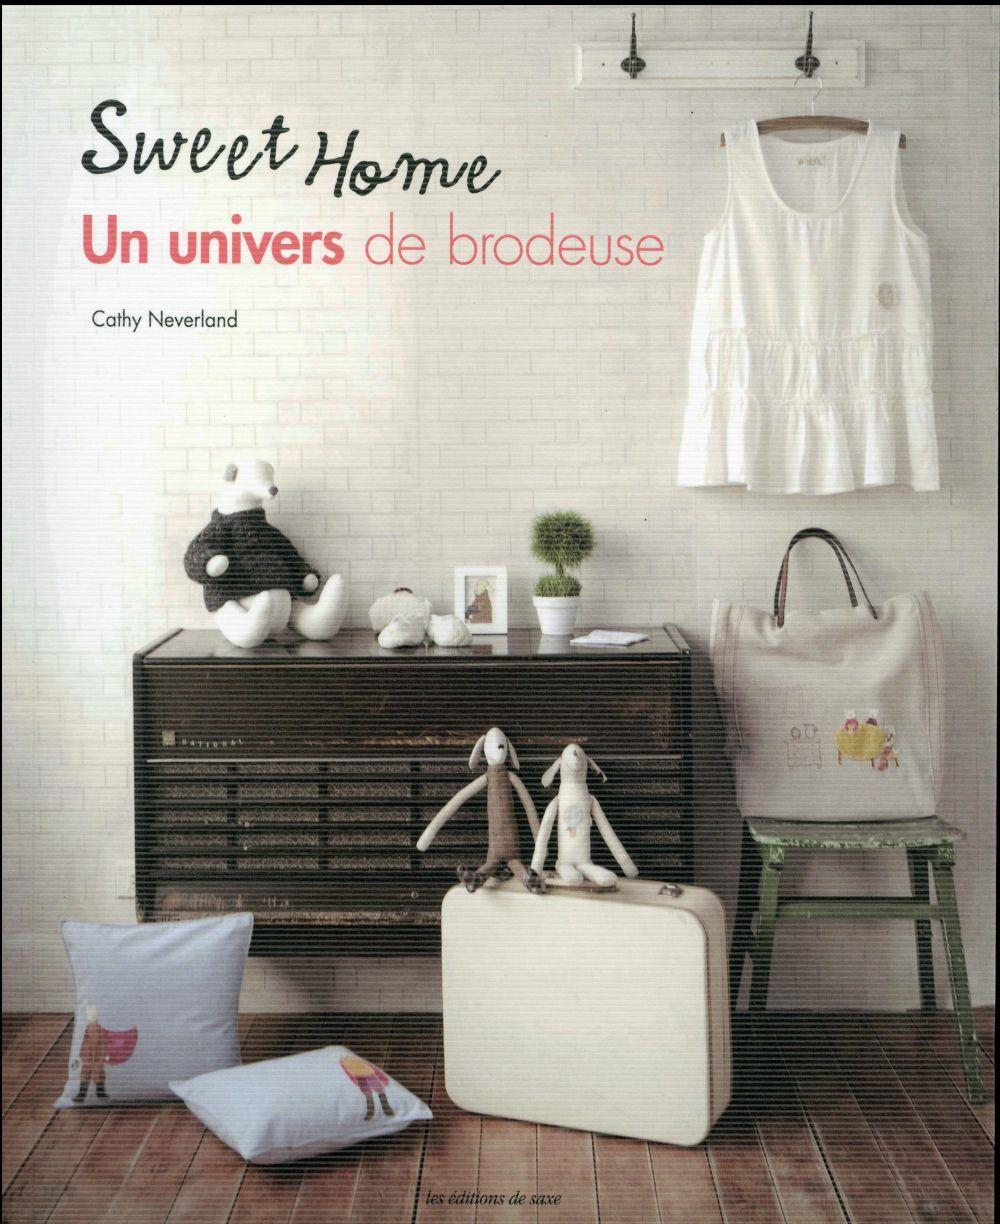 Sweet home ; un univers de brodeuse  - Cathy Neverland